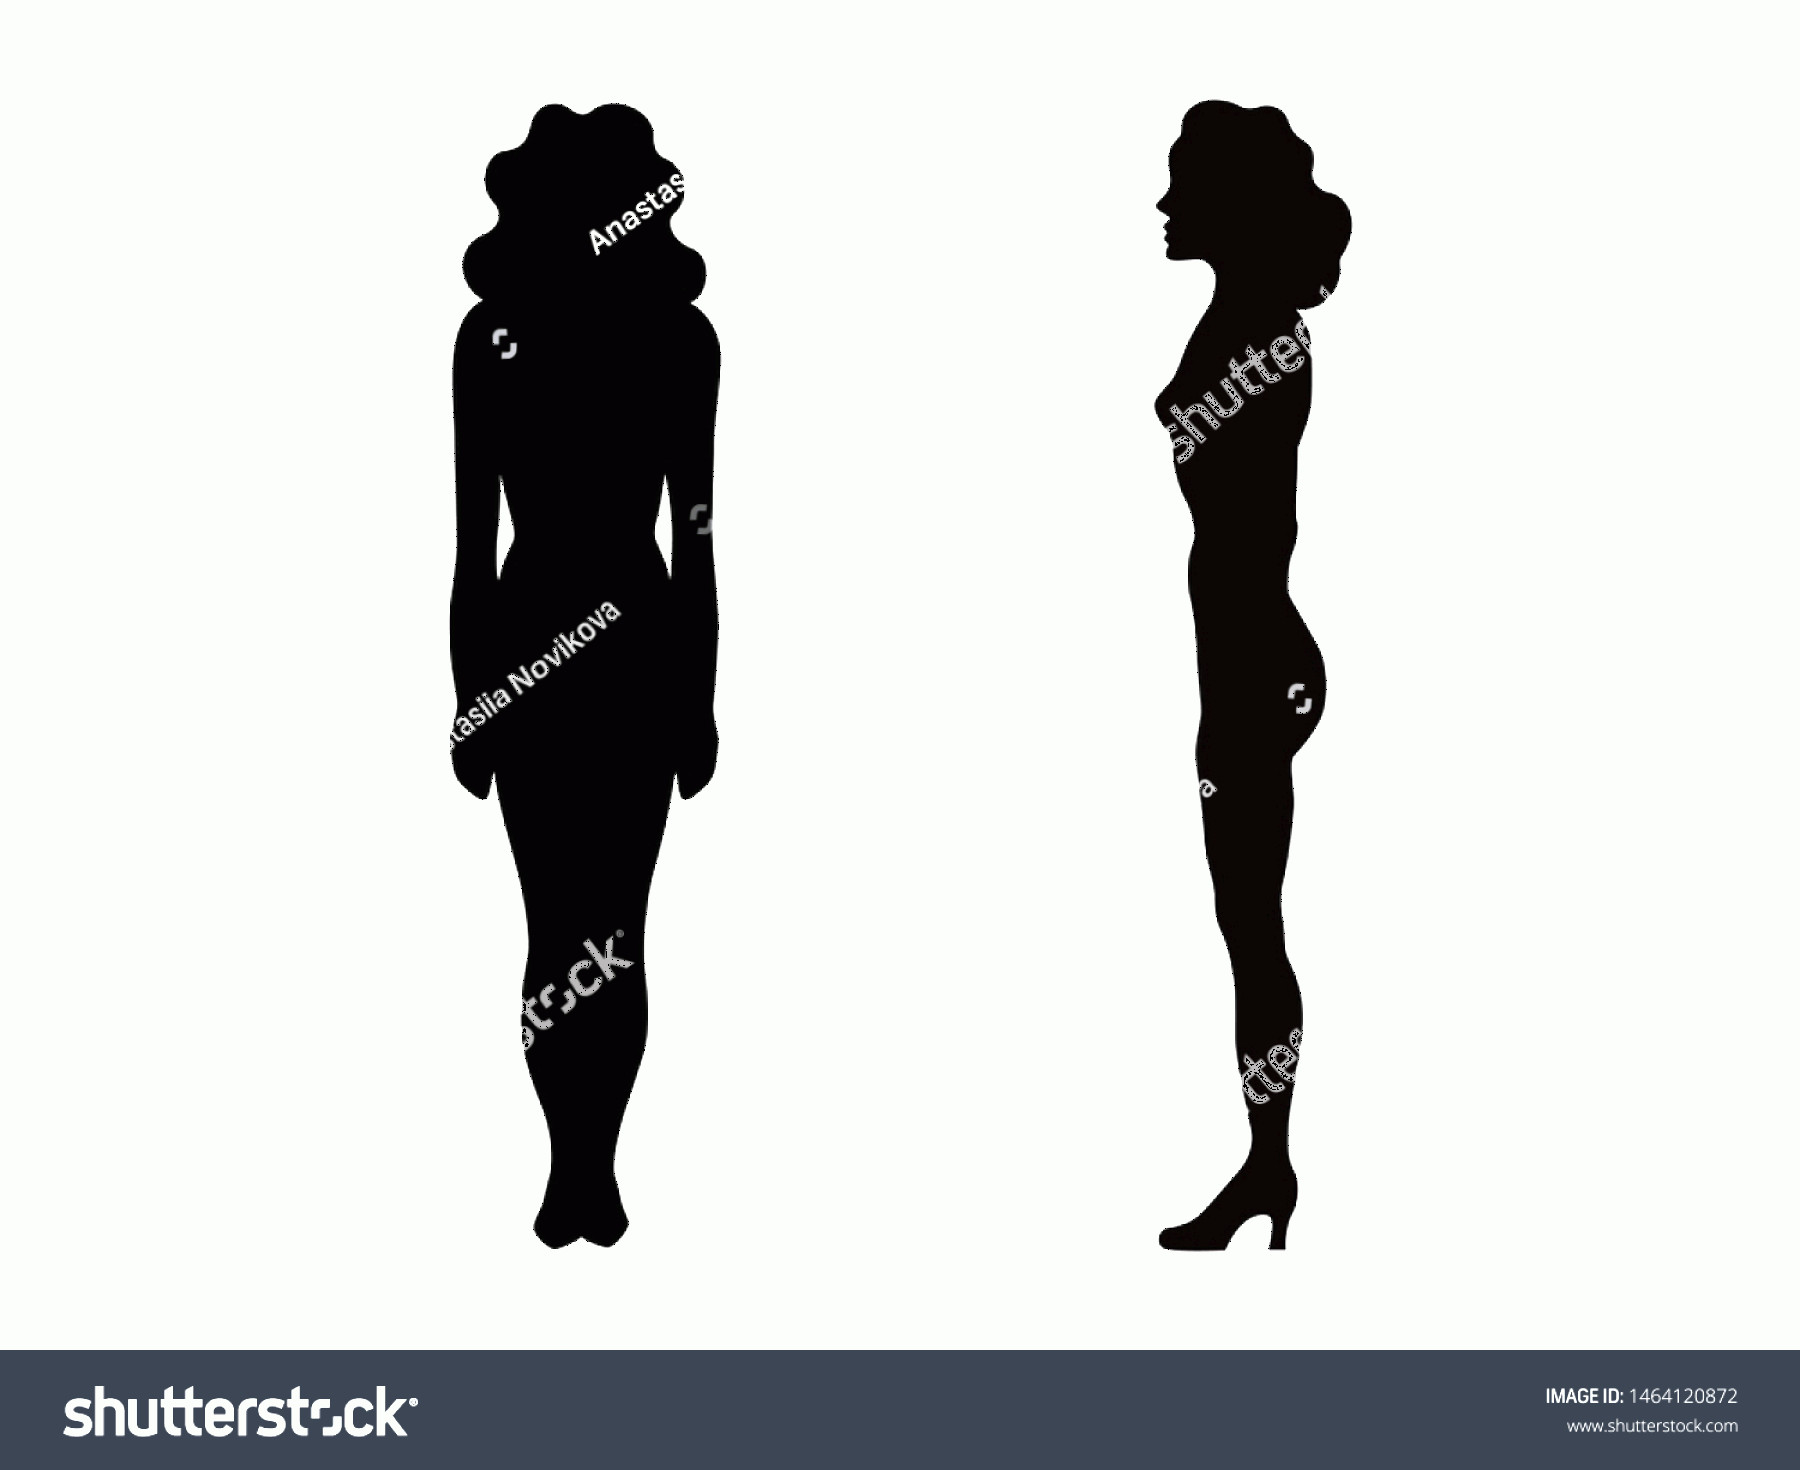 Woman Silhouette Vector Clip Art: Woman Silhouette Isolated On White Background